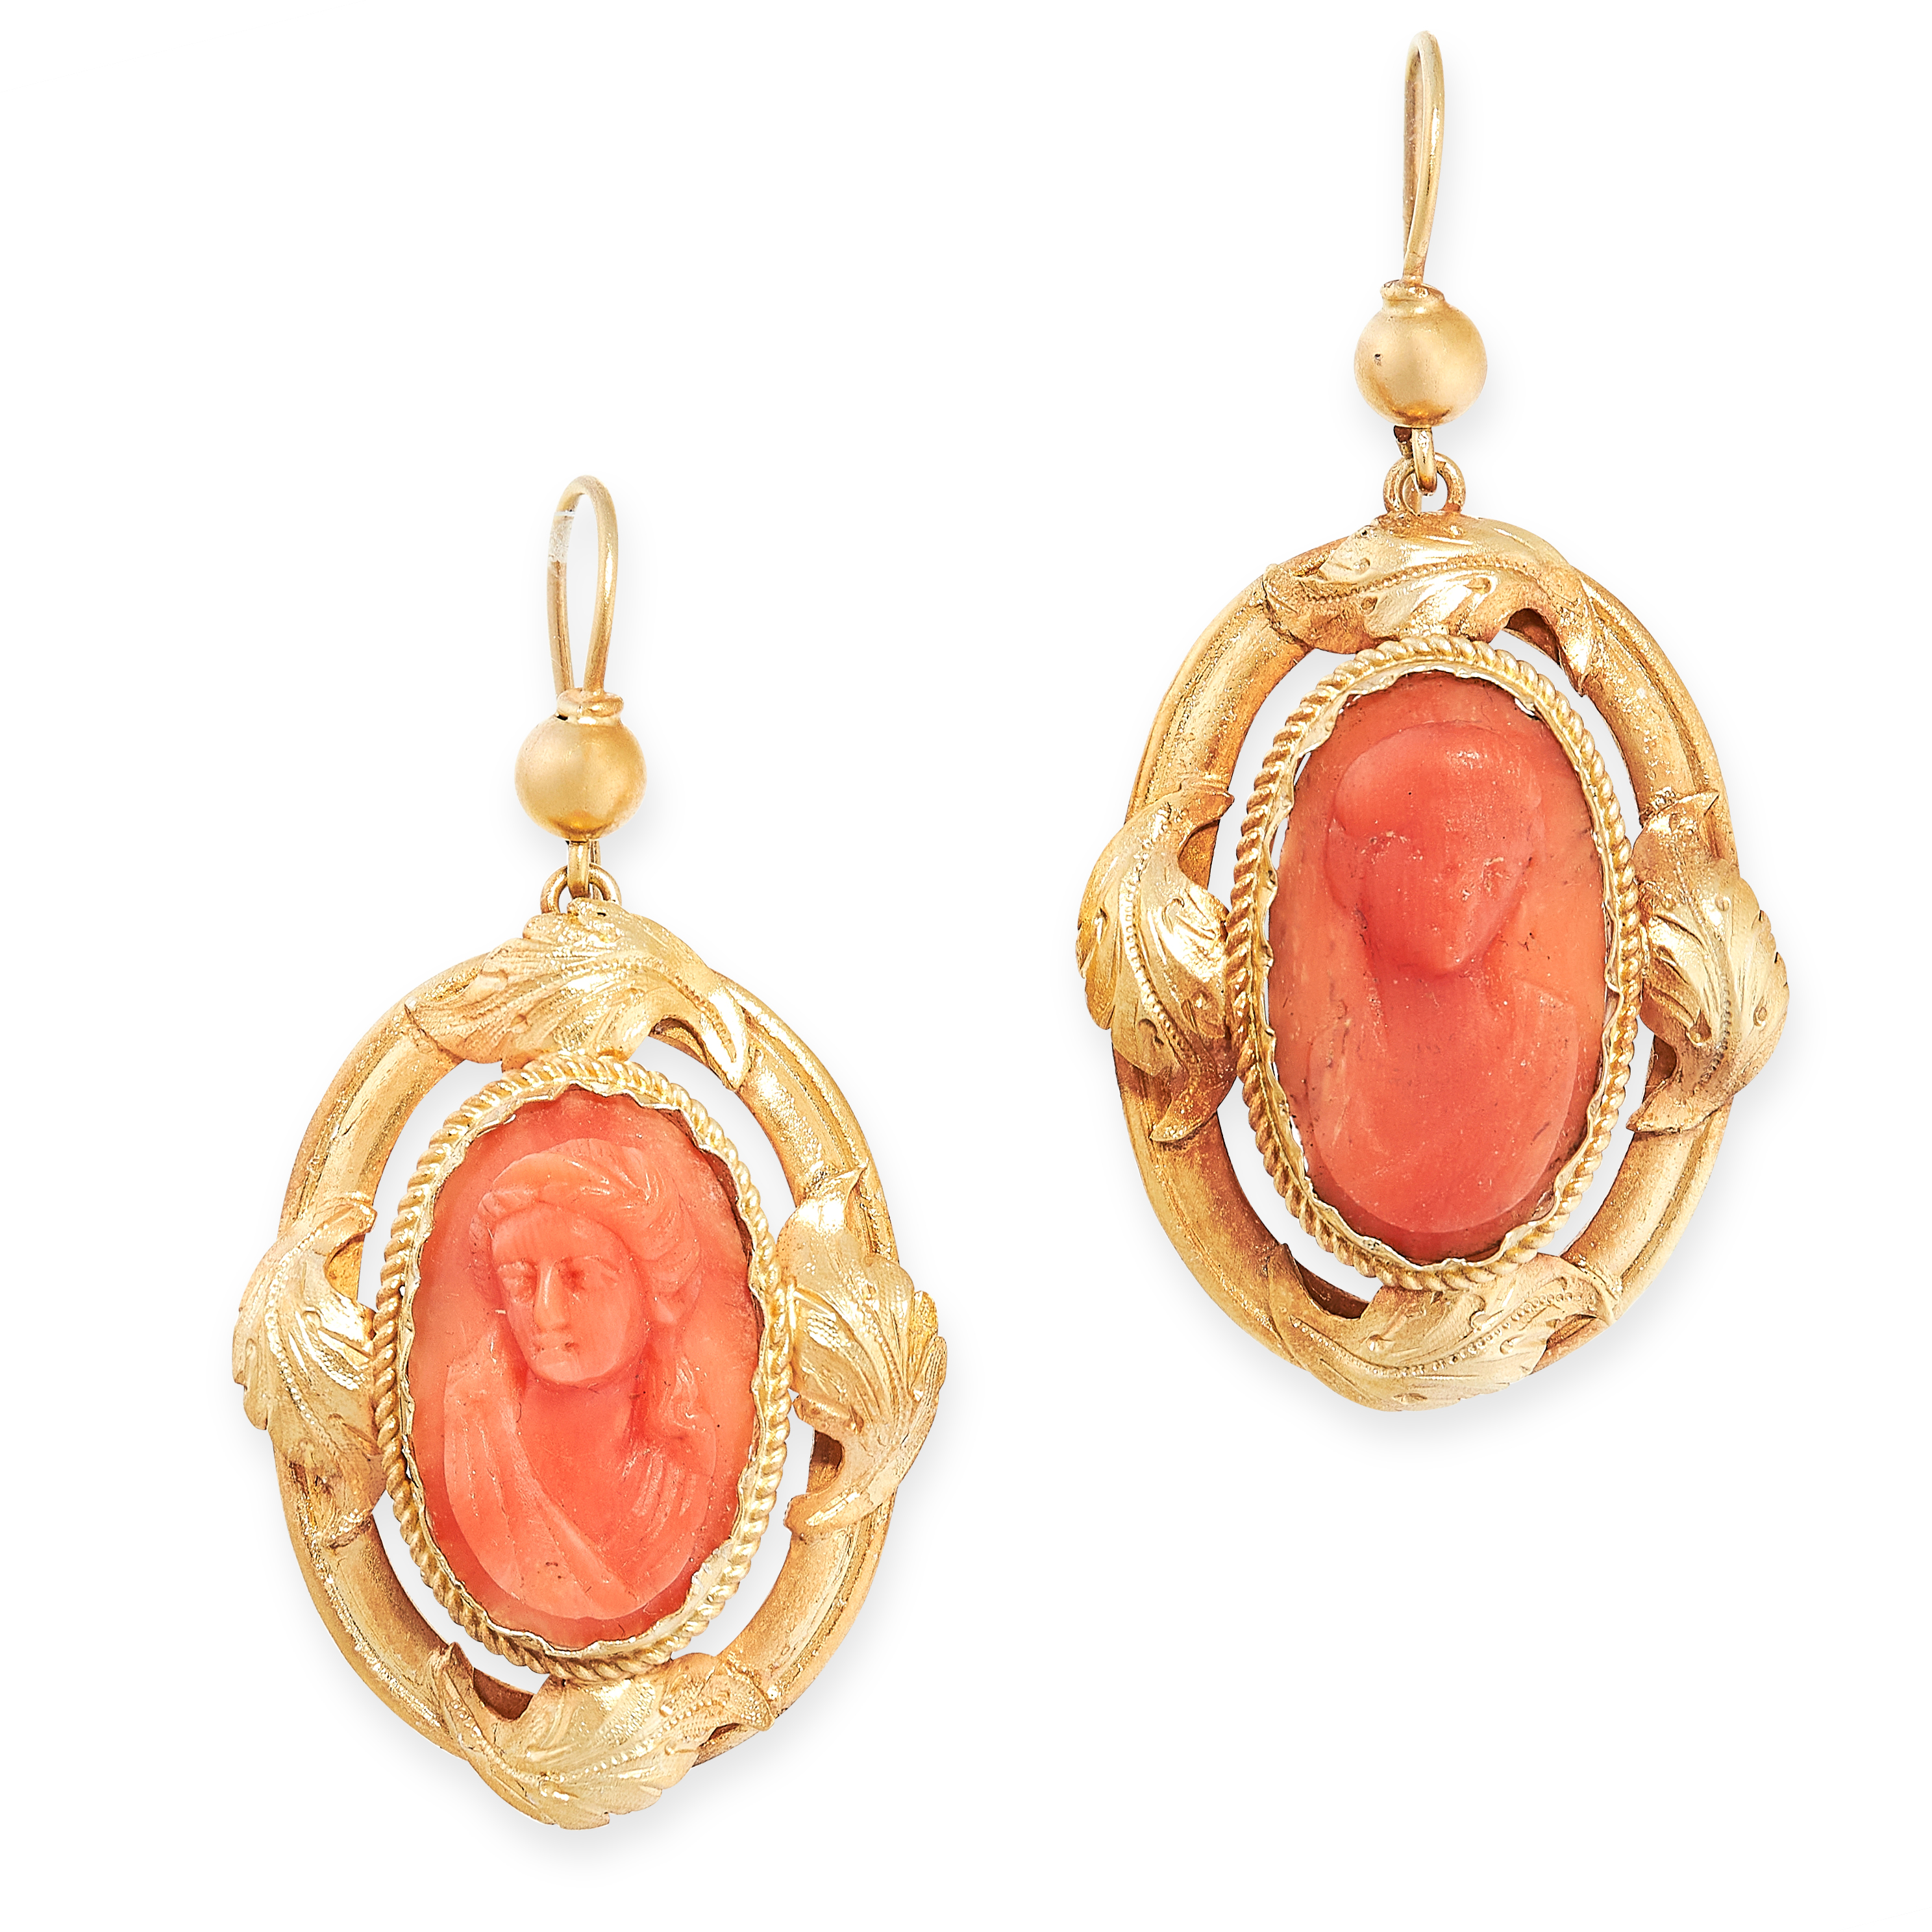 PAIR OF ANTIQUE CORAL CAMEO EARRINGS, 19TH CENTURY each set with a carved coral cameo depicting